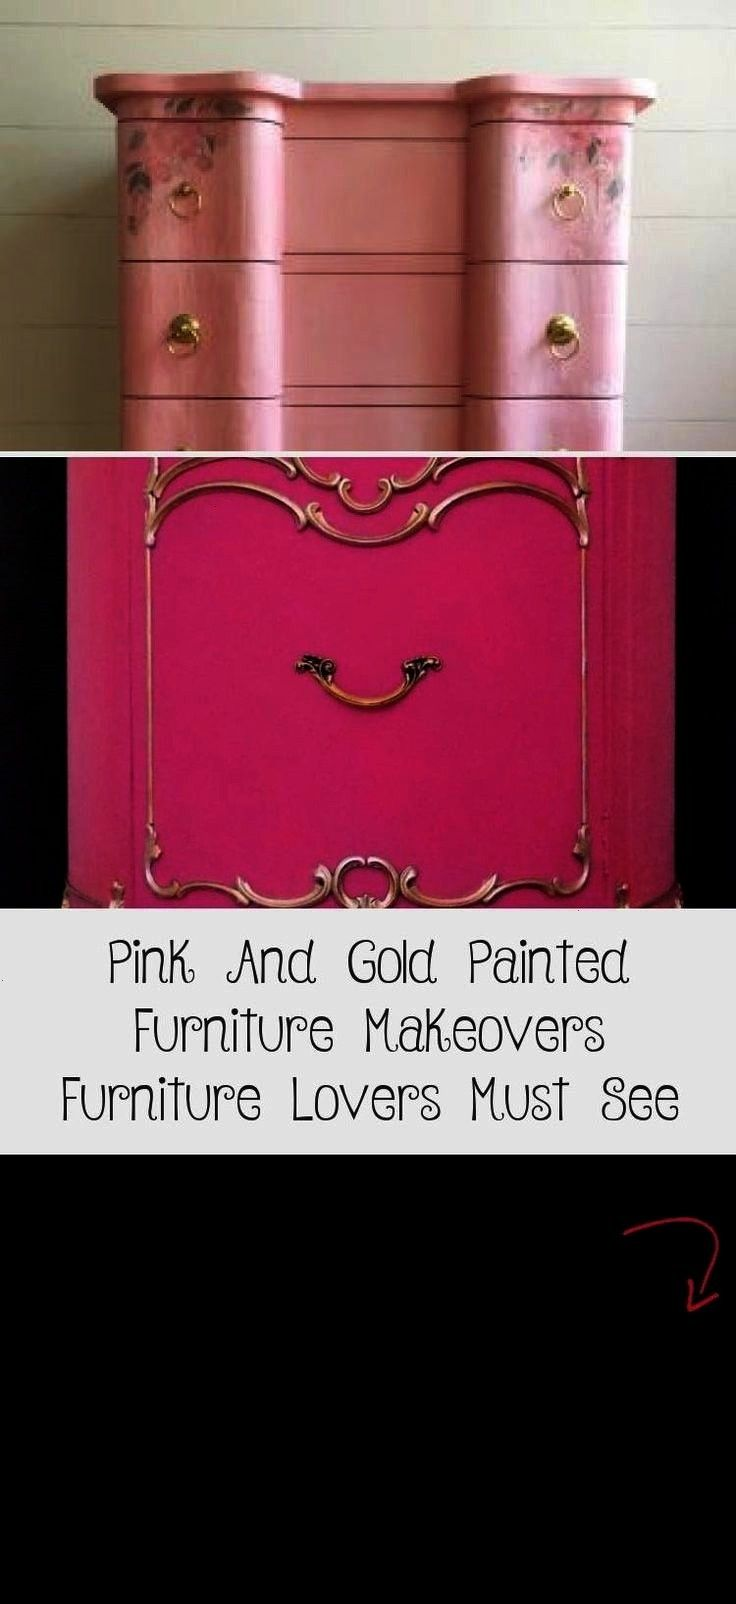 Gold Painted Furniture Makeovers Furniture Lovers Must See Furniture Furniturema Pink And Gold Painted Furniture Makeovers Furniture Lovers Must See Furniture Furniturema...